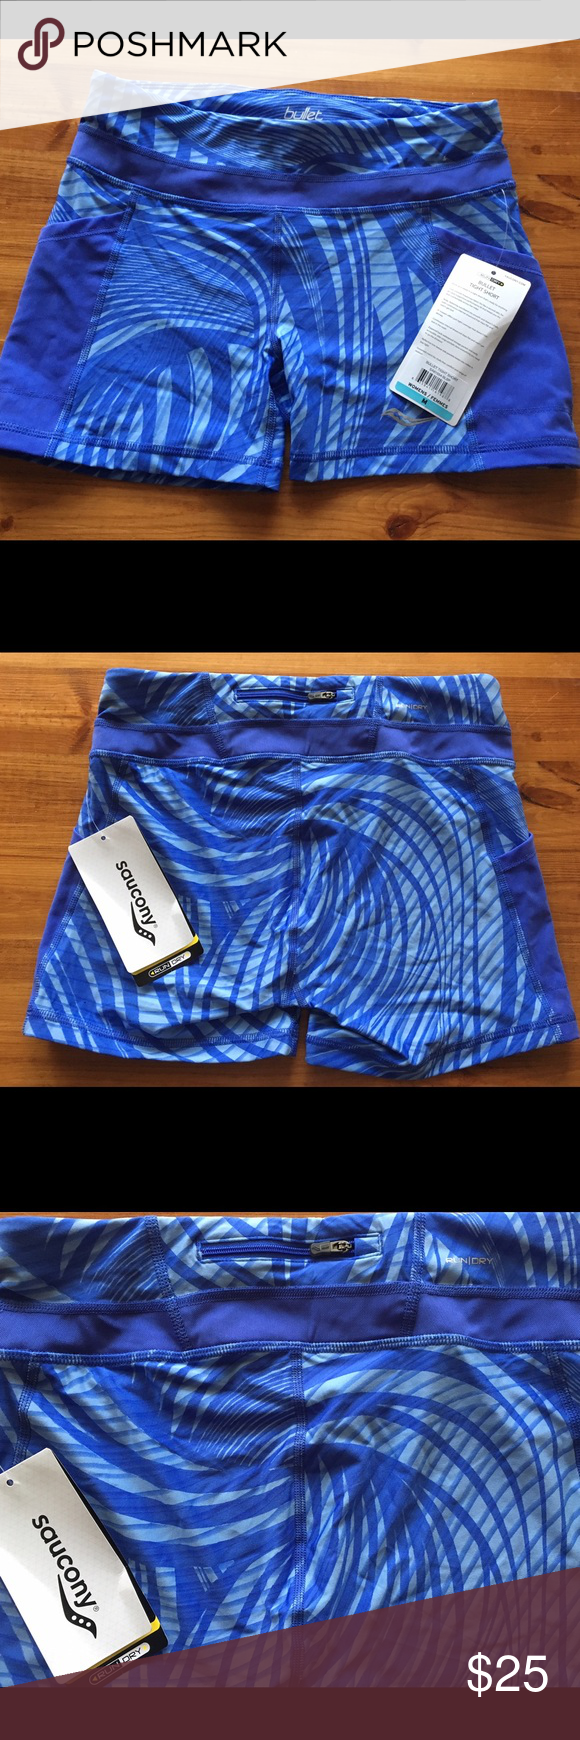 47466337d1 Saucony Bullet Tight Shorts Saucony bullet tight shorts. NWT. Size ...